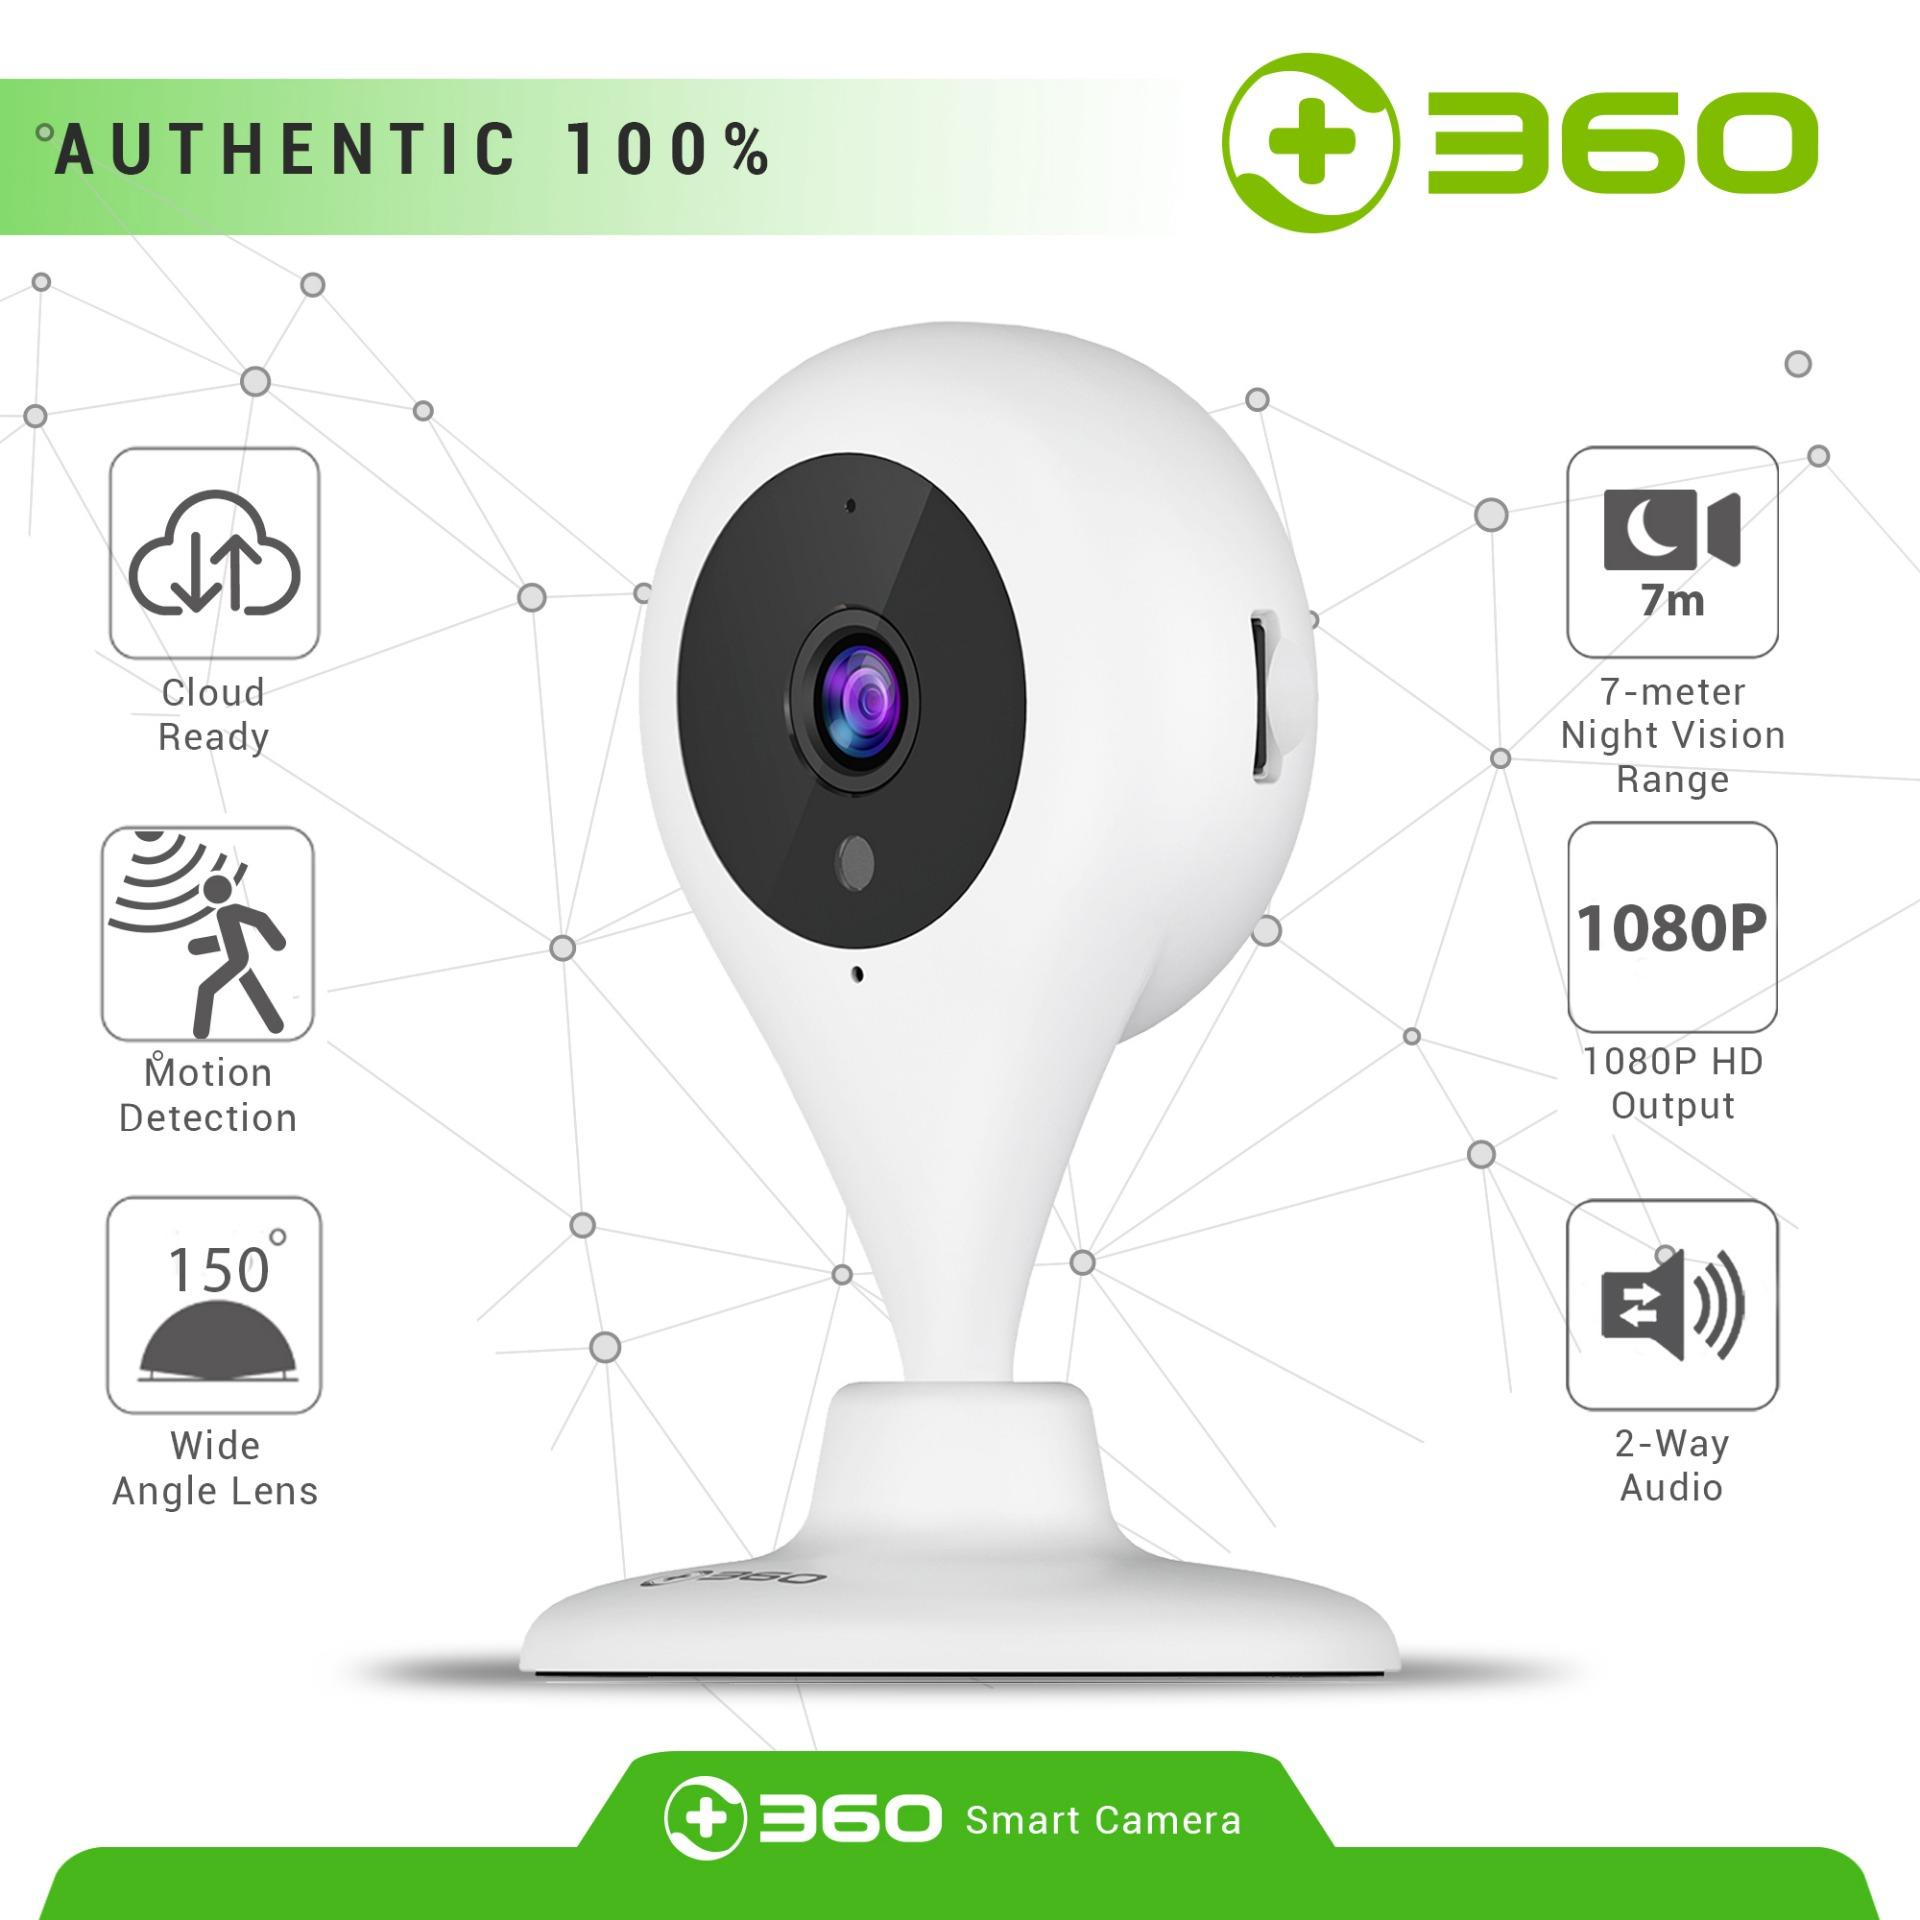 product details of qihoo 360 d606 home security camera ip camera 1080p full  hd mini ip ccd motion detection - 2 way audio wireless wifi infrared  security